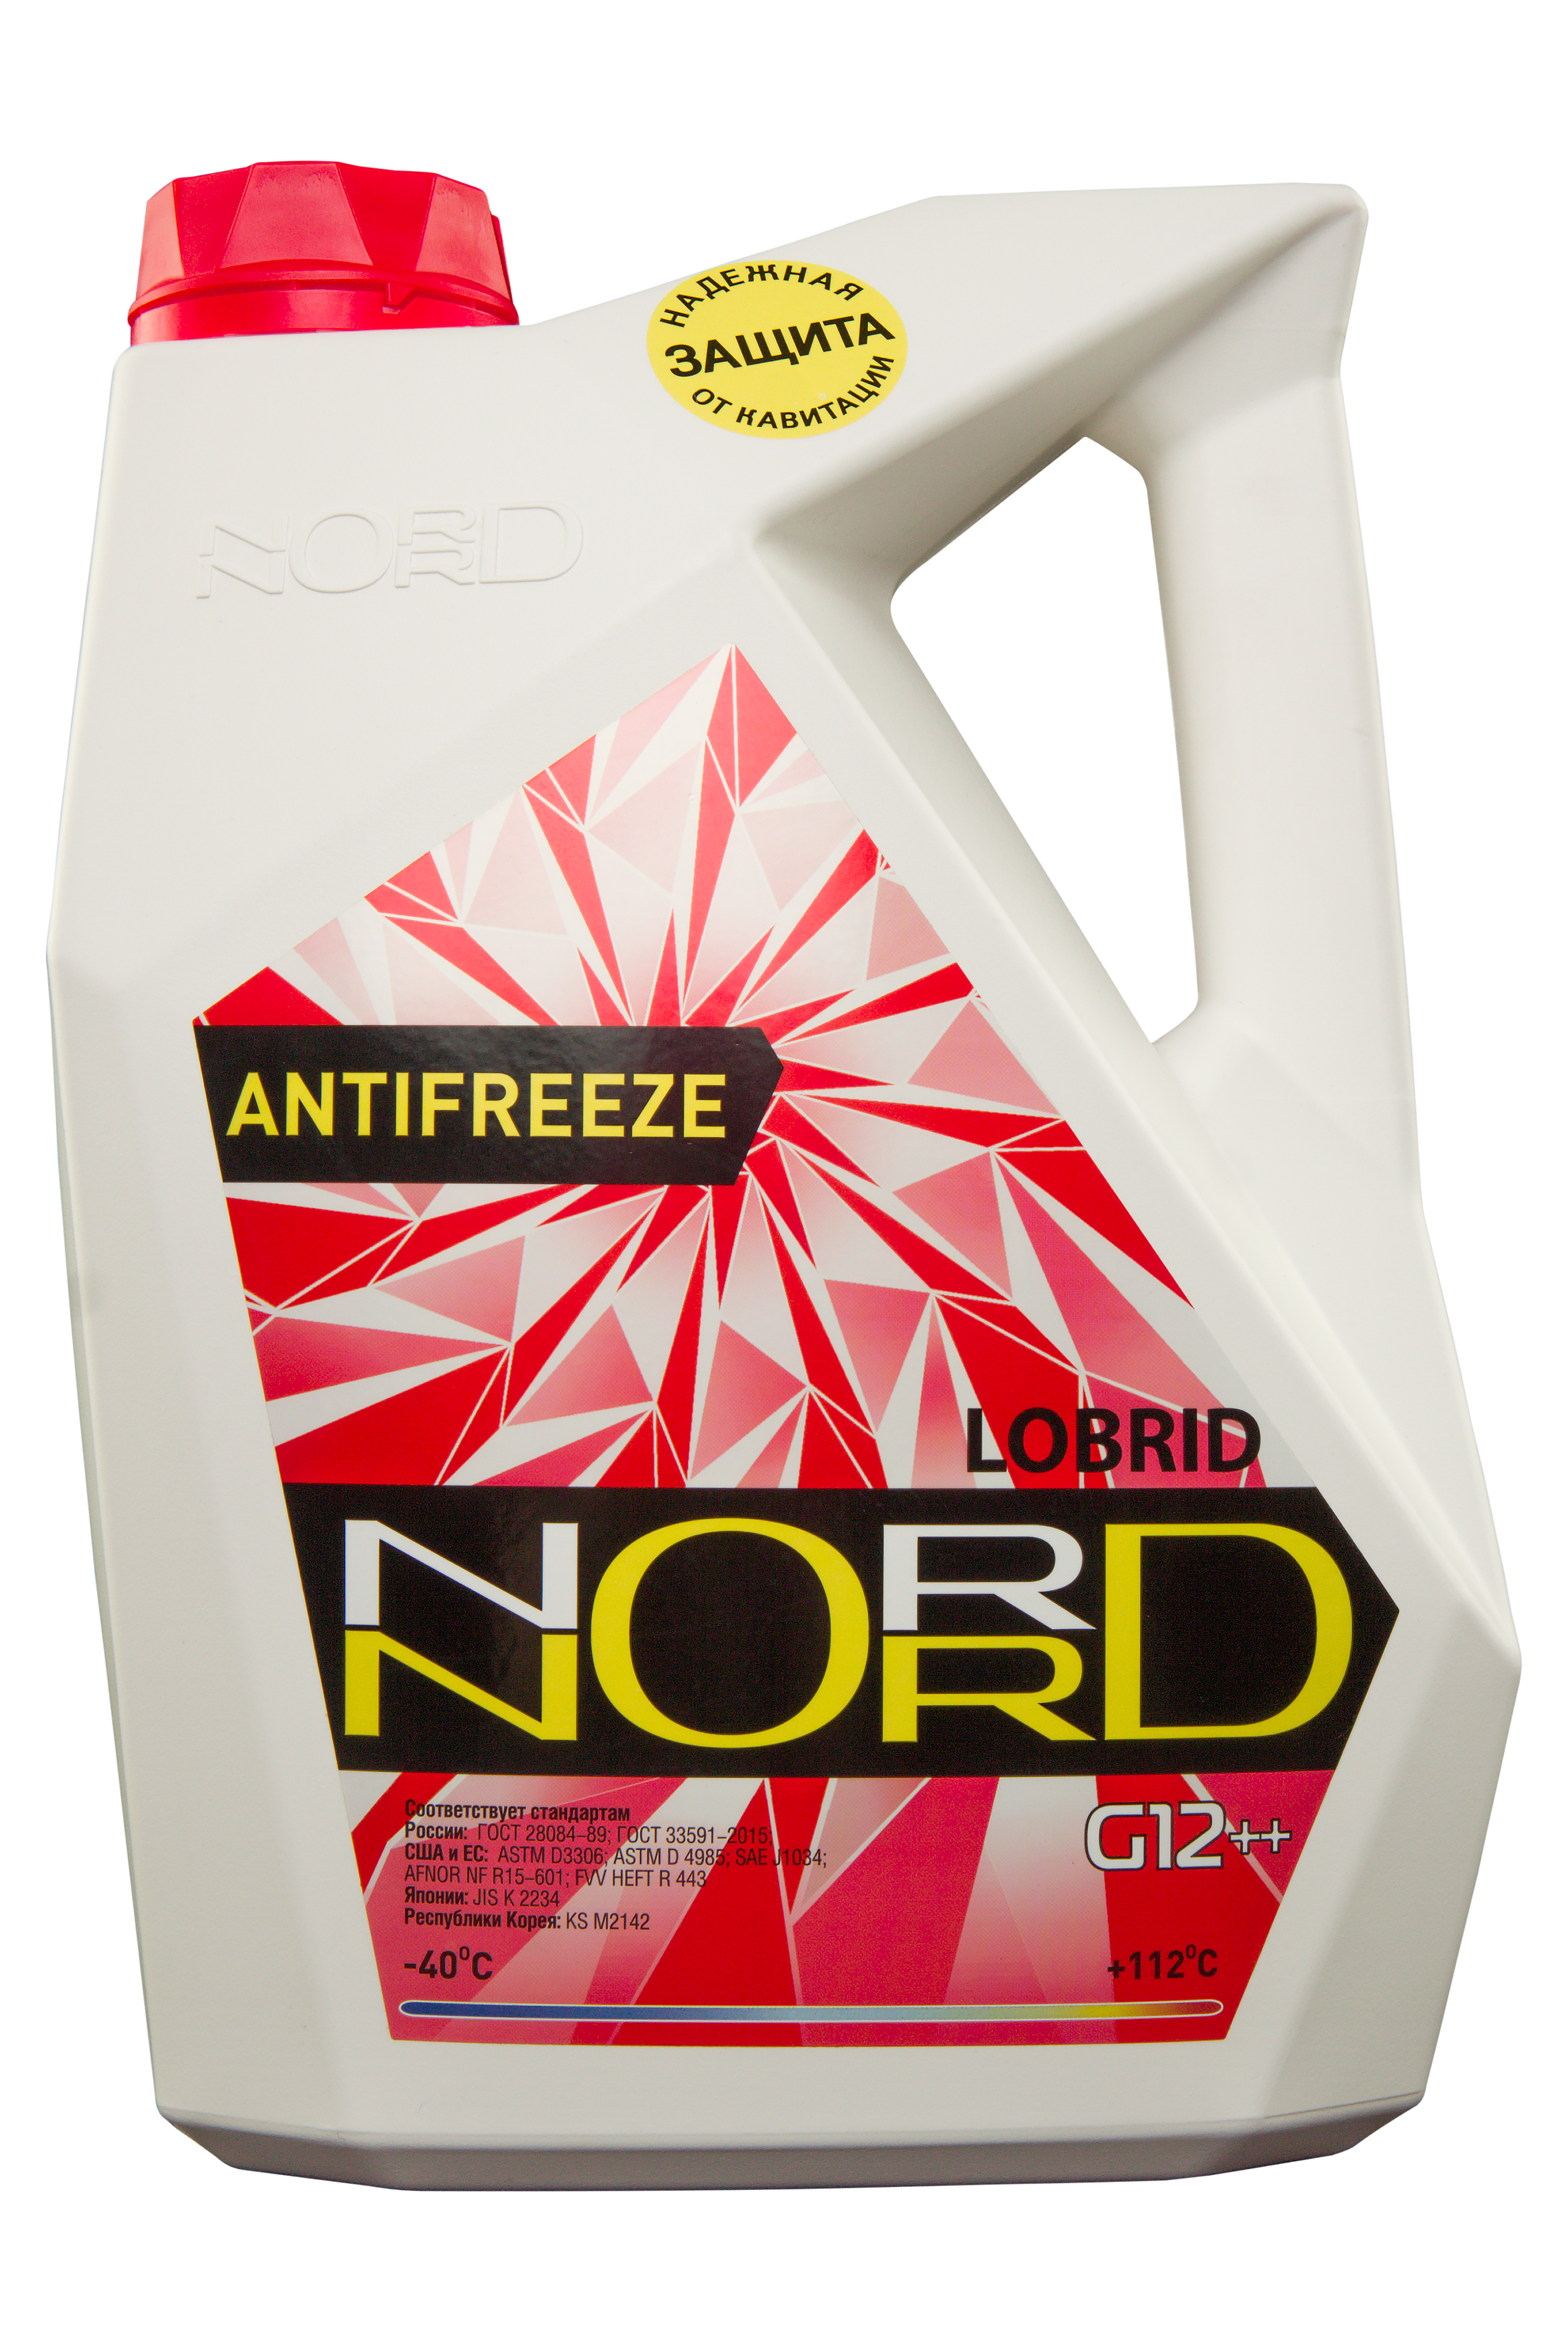 nord NR20249 Антифриз NORD High Quality Antifreeze готовый -40C красный 5 кг